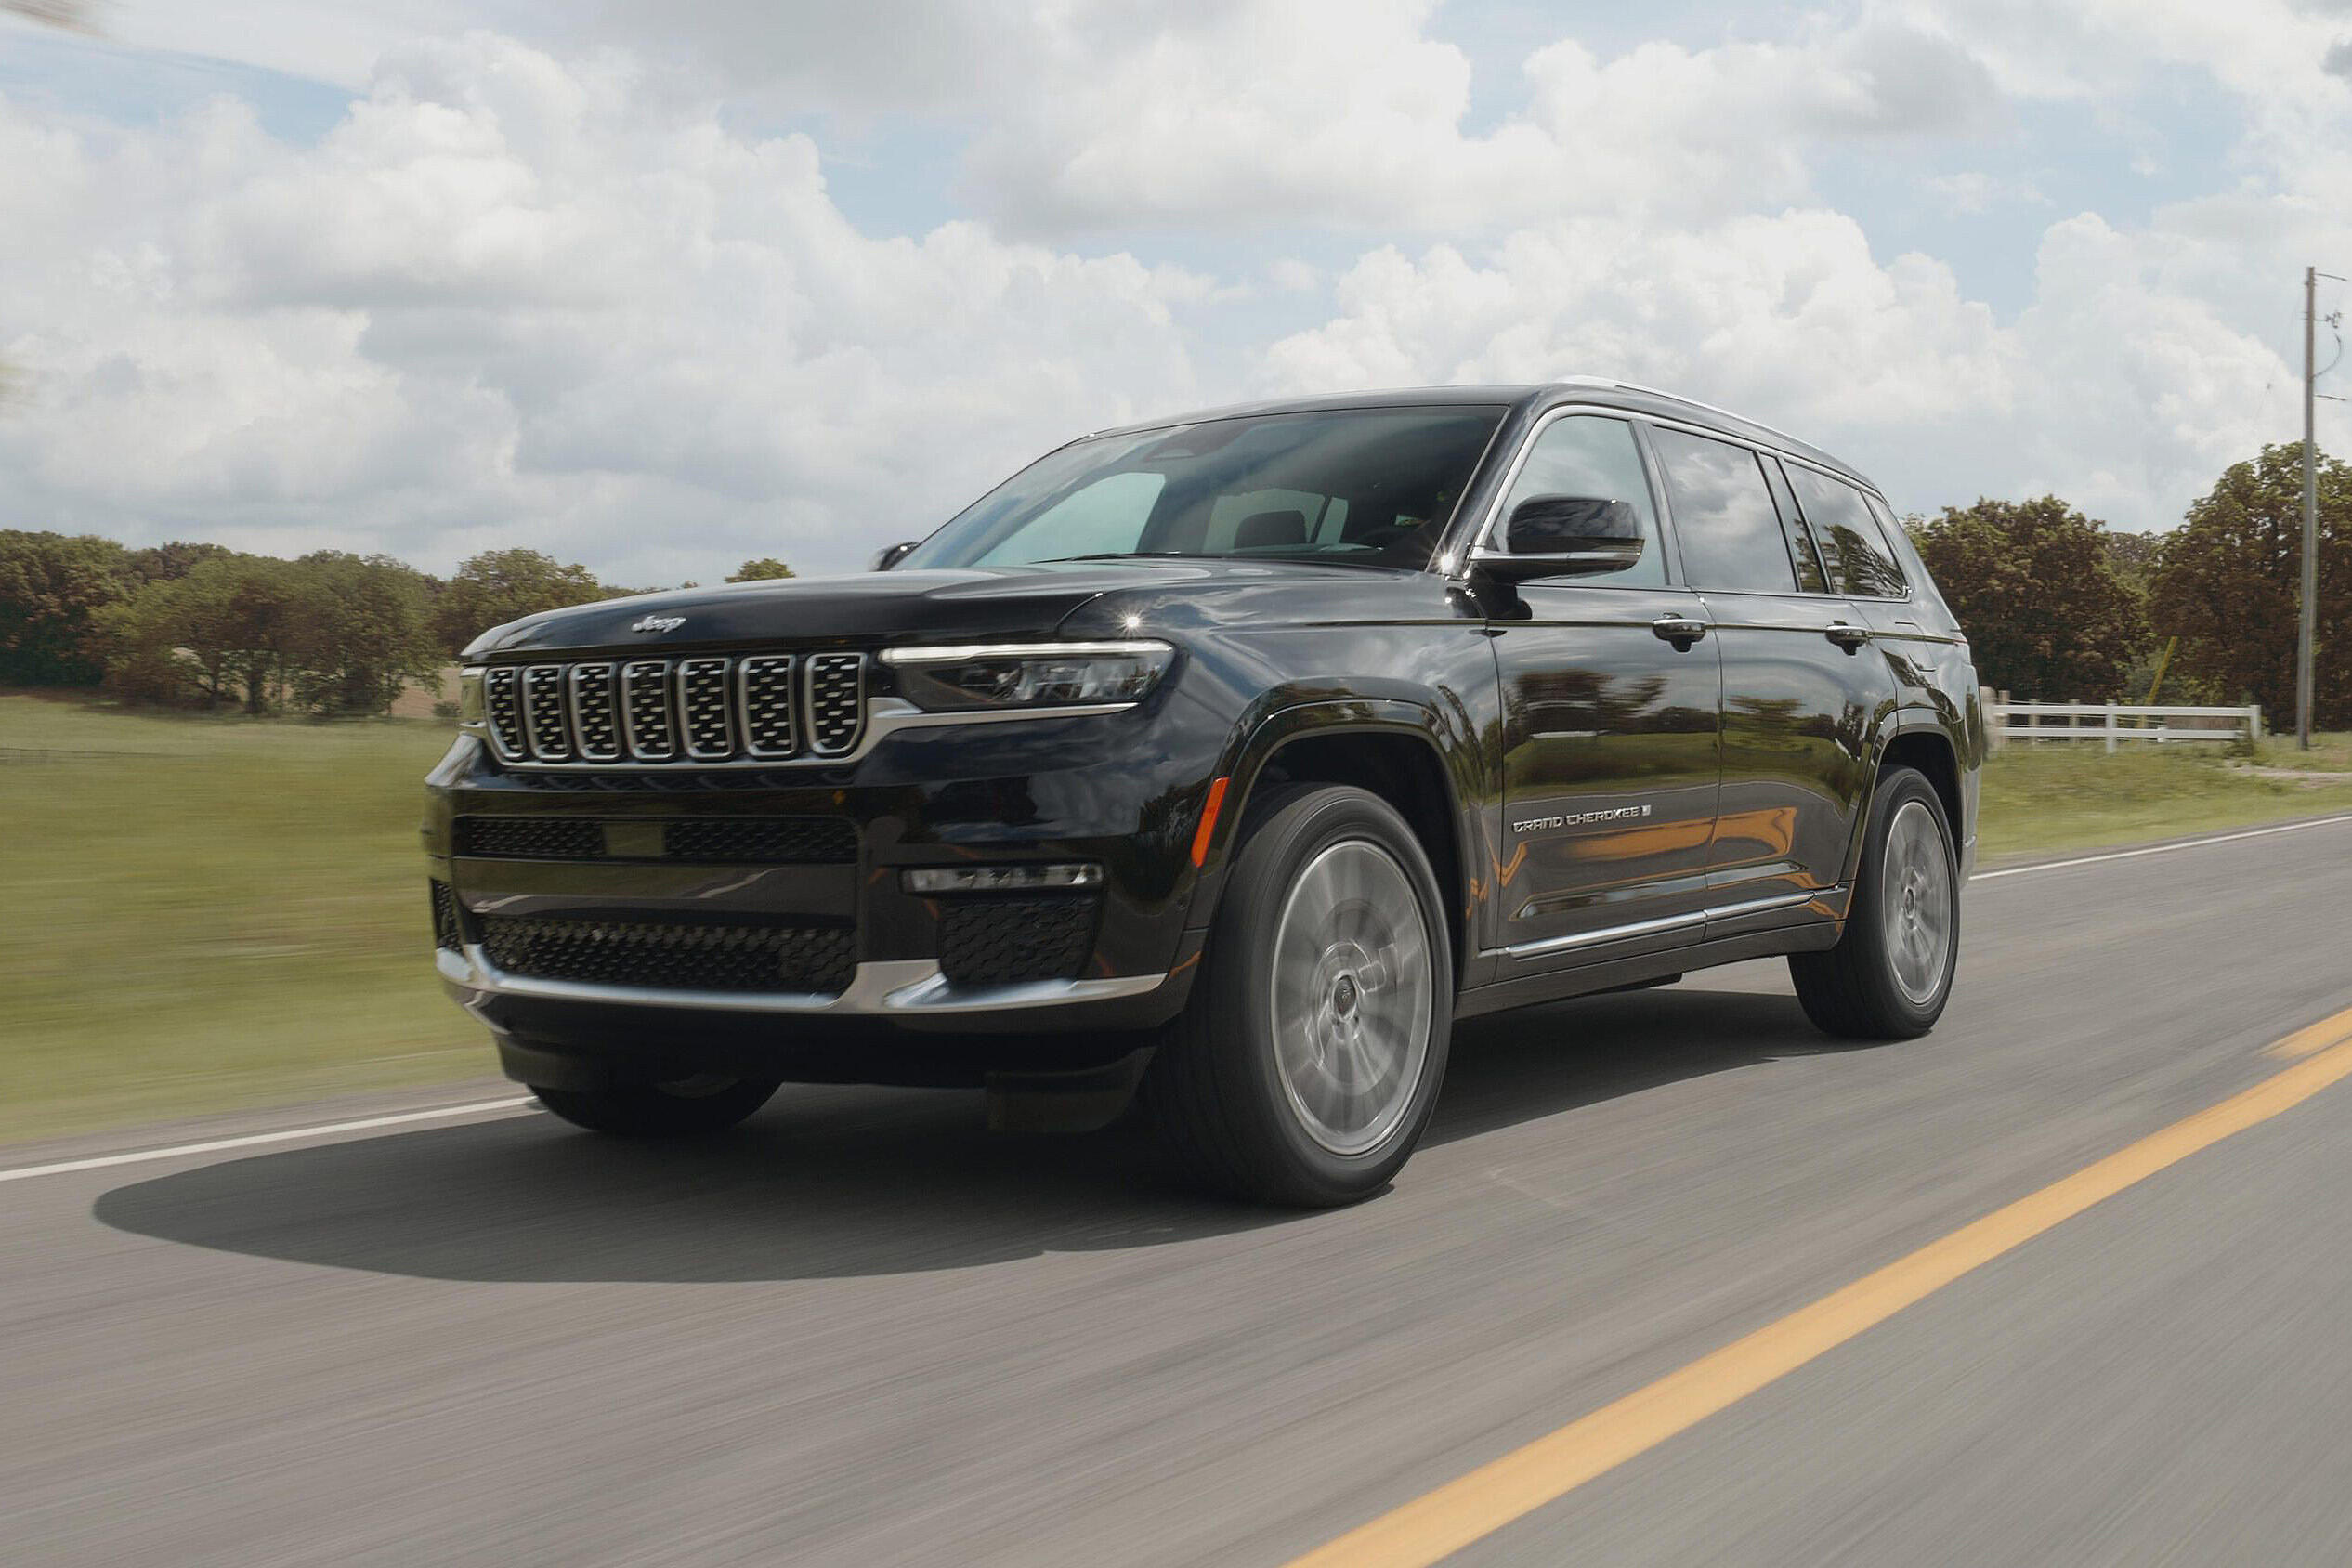 2021 Jeep Grand Cherokee L first drive review: What the L?     - Roadshow